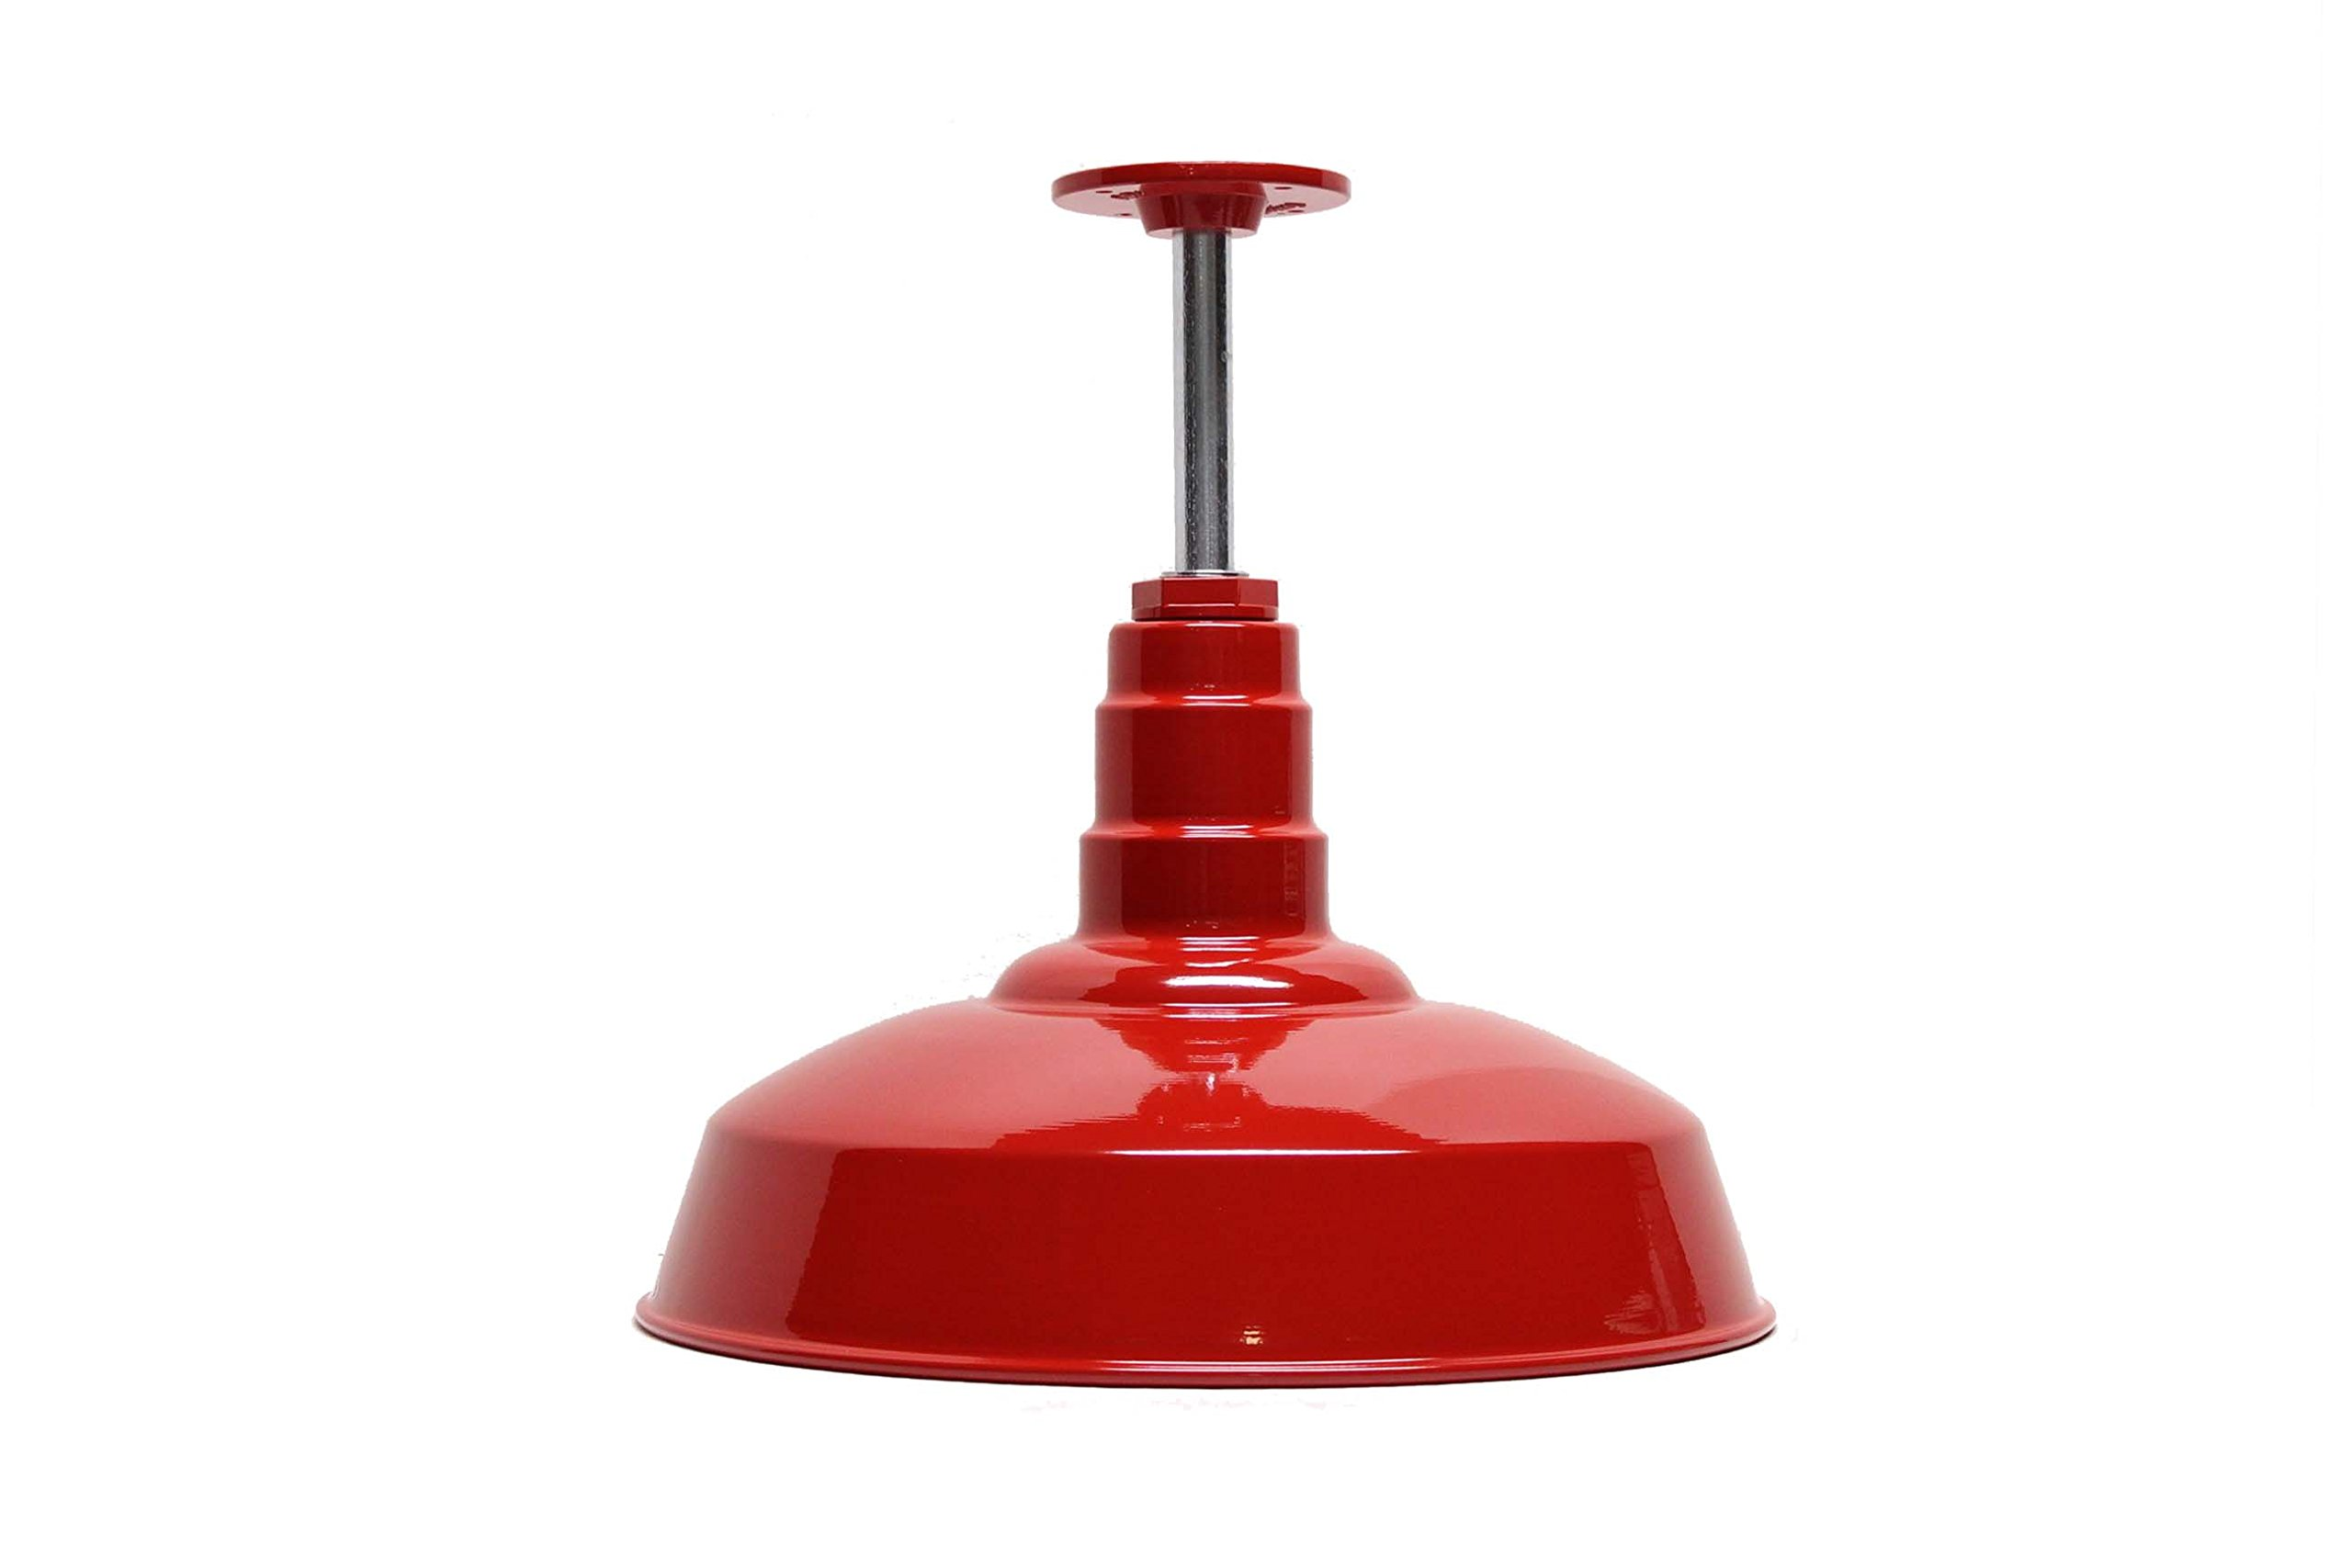 200 Watt Red Standard Rigid Pendant | Pendant Shade | 16'' Dome 12'' Stem | Includes Ceiling Mounting Plate | Made in America Powder Coated Steel by Ark Lighting